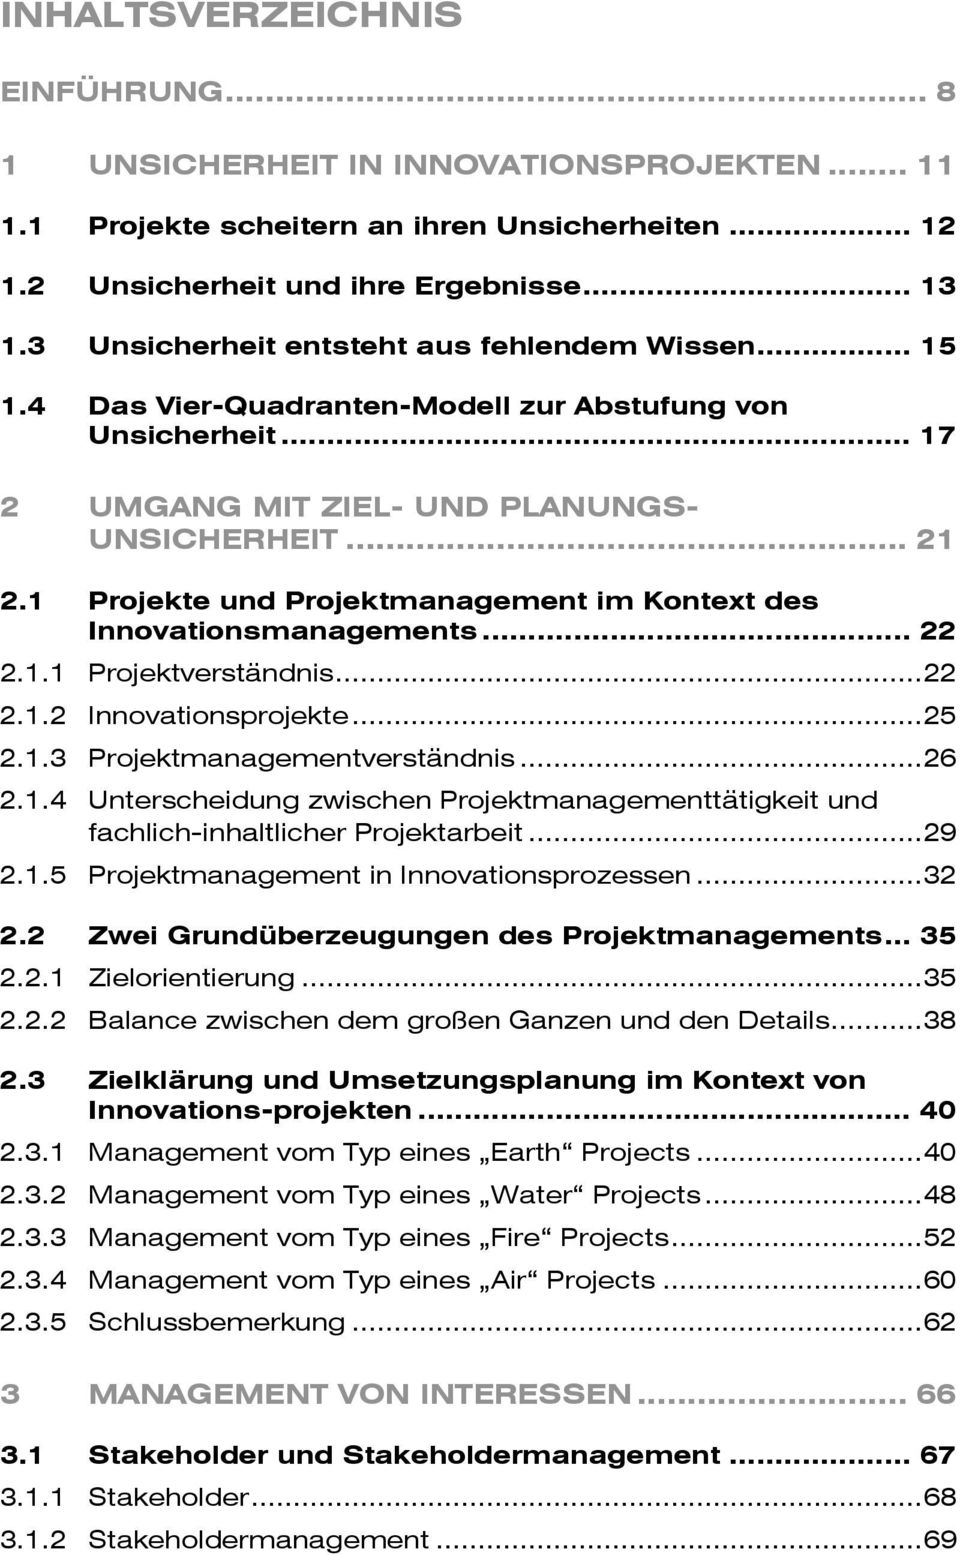 1 Projekte und Projektmanagement im Kontext des Innovationsmanagements... 22 2.1.1 Projektverständnis... 22 2.1.2 Innovationsprojekte... 25 2.1.3 Projektmanagementverständnis... 26 2.1.4 Unterscheidung zwischen Projektmanagementtätigkeit und fachlich-inhaltlicher Projektarbeit.